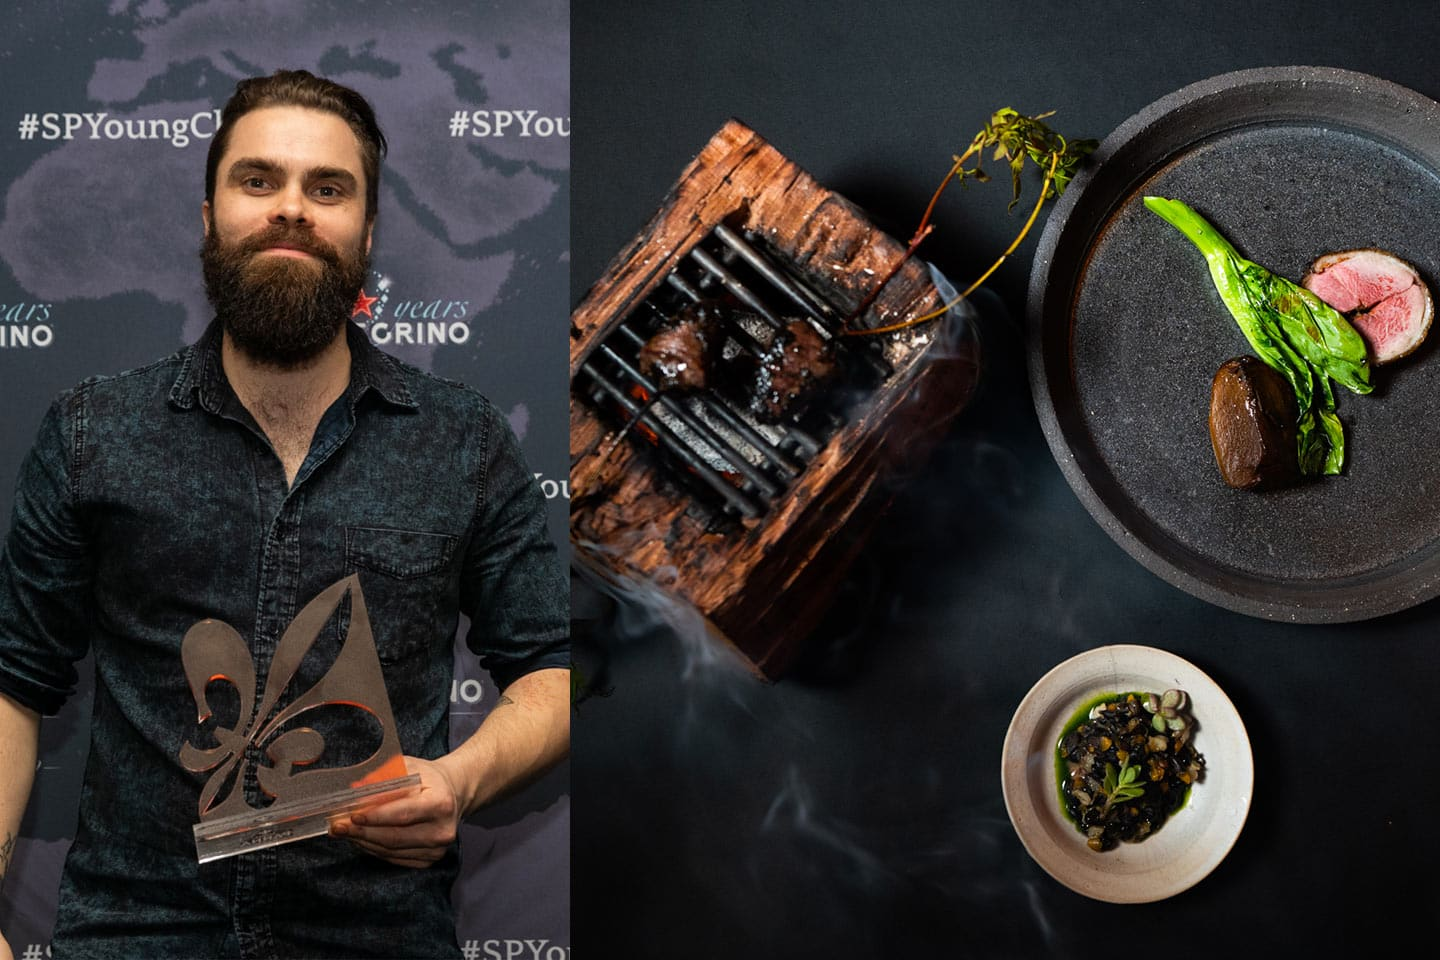 James Bond Kennedy Acqua Panna Award for Connection in Gastronomy Pacific Final 2019